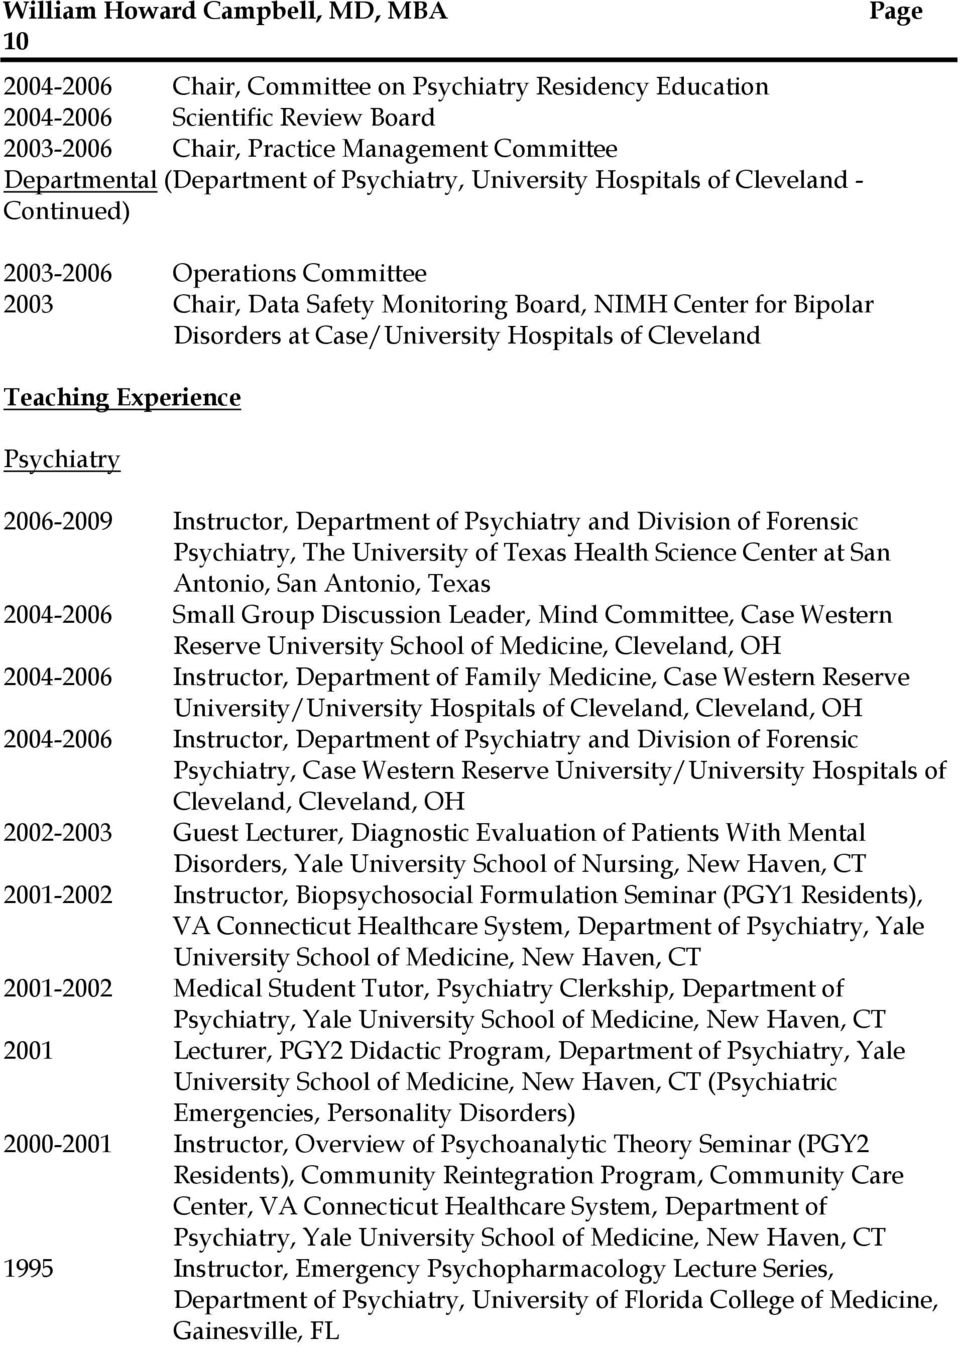 Experience Psychiatry 2006-2009 Instructor, Department of Psychiatry and Division of Forensic Psychiatry, The University of Texas Health Science Center at San Antonio, San Antonio, Texas 2004-2006